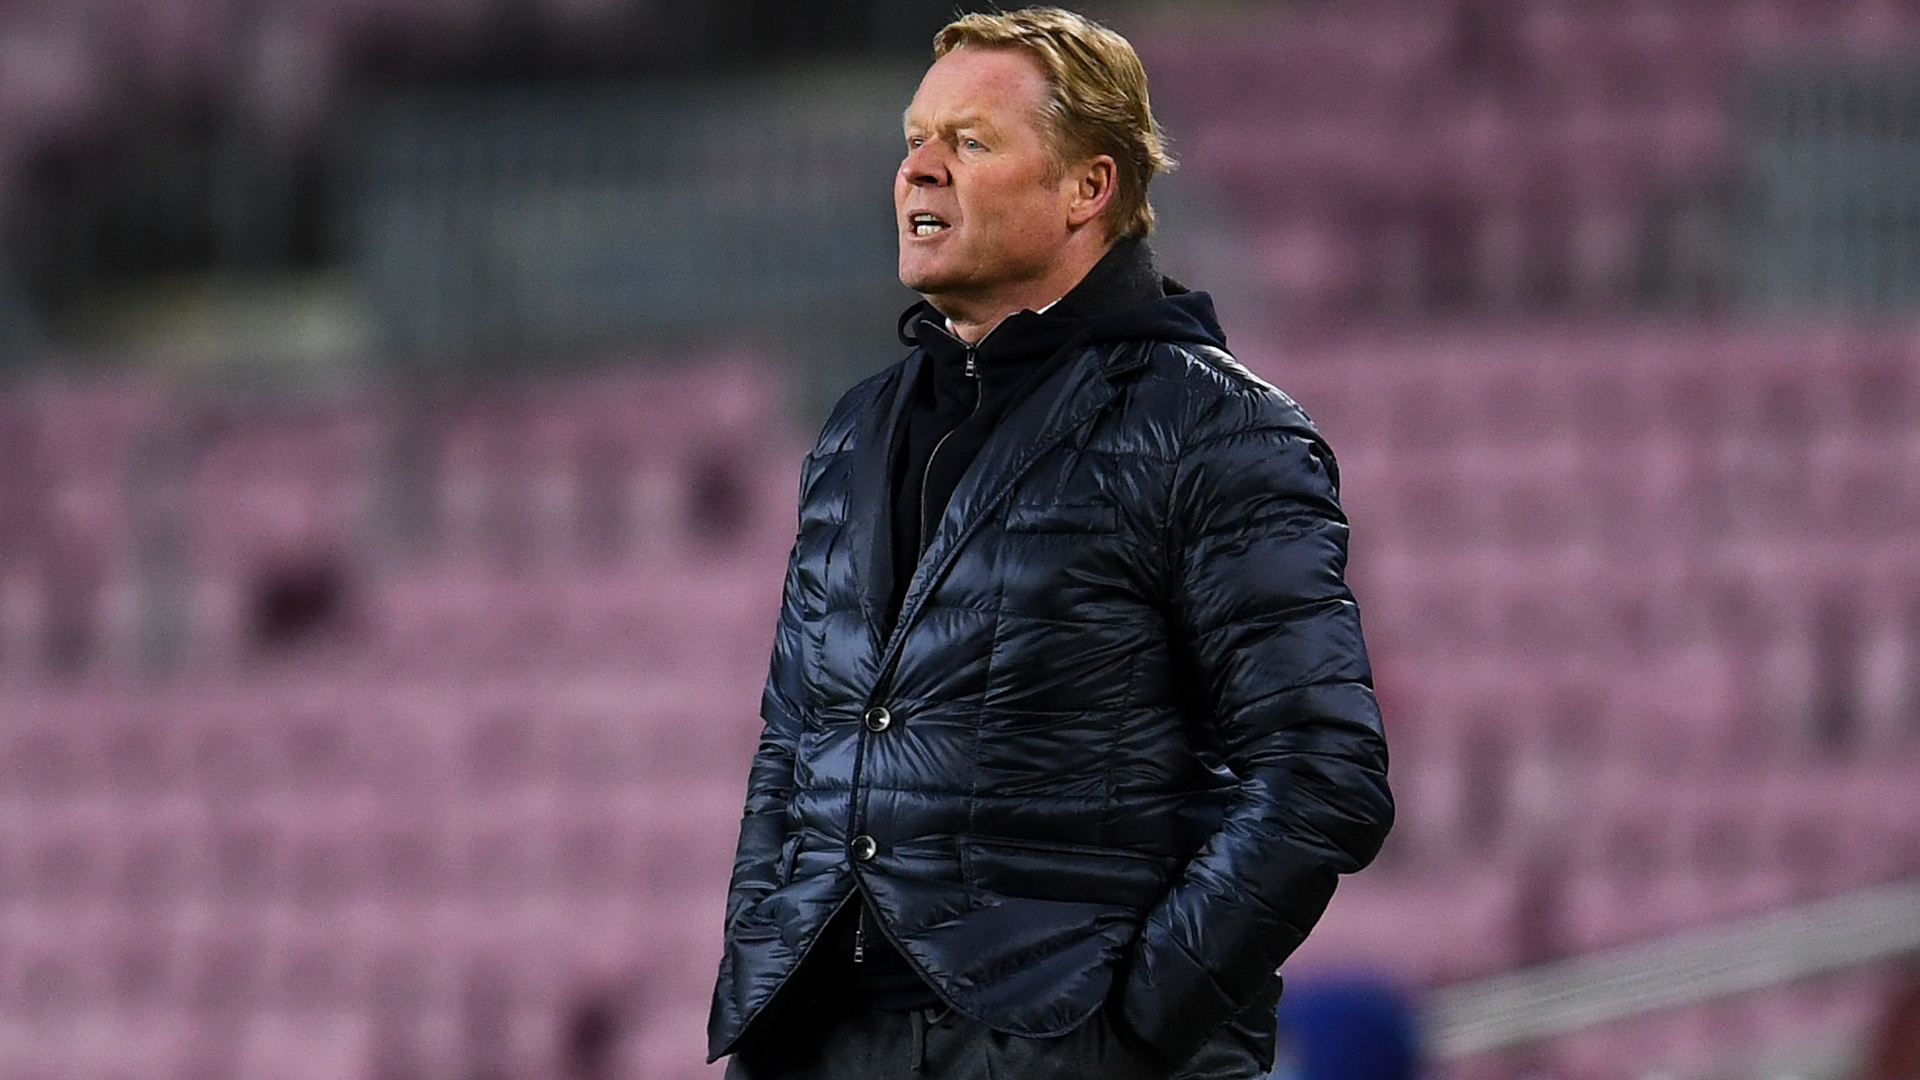 Koeman: There's no Messi but Barcelona are excited about this season